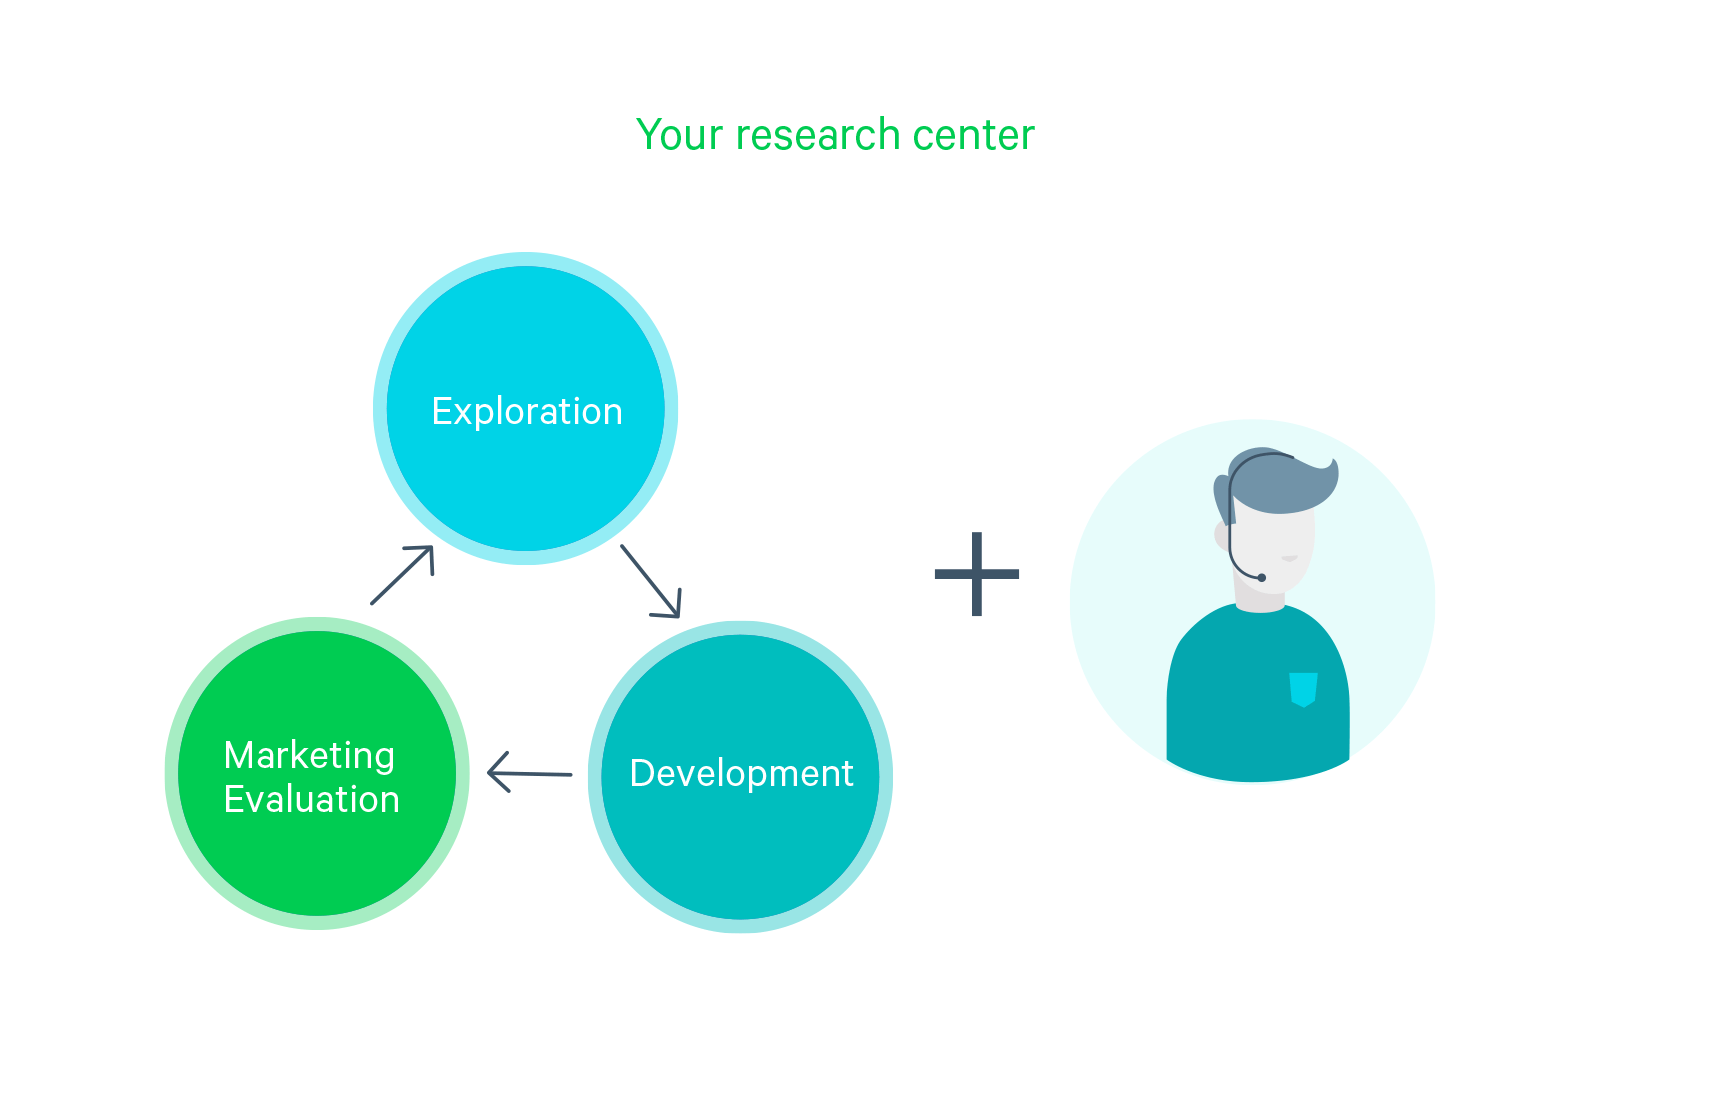 An illustration depicting your research center and the combination of exploration, development, and marketing evaluation.